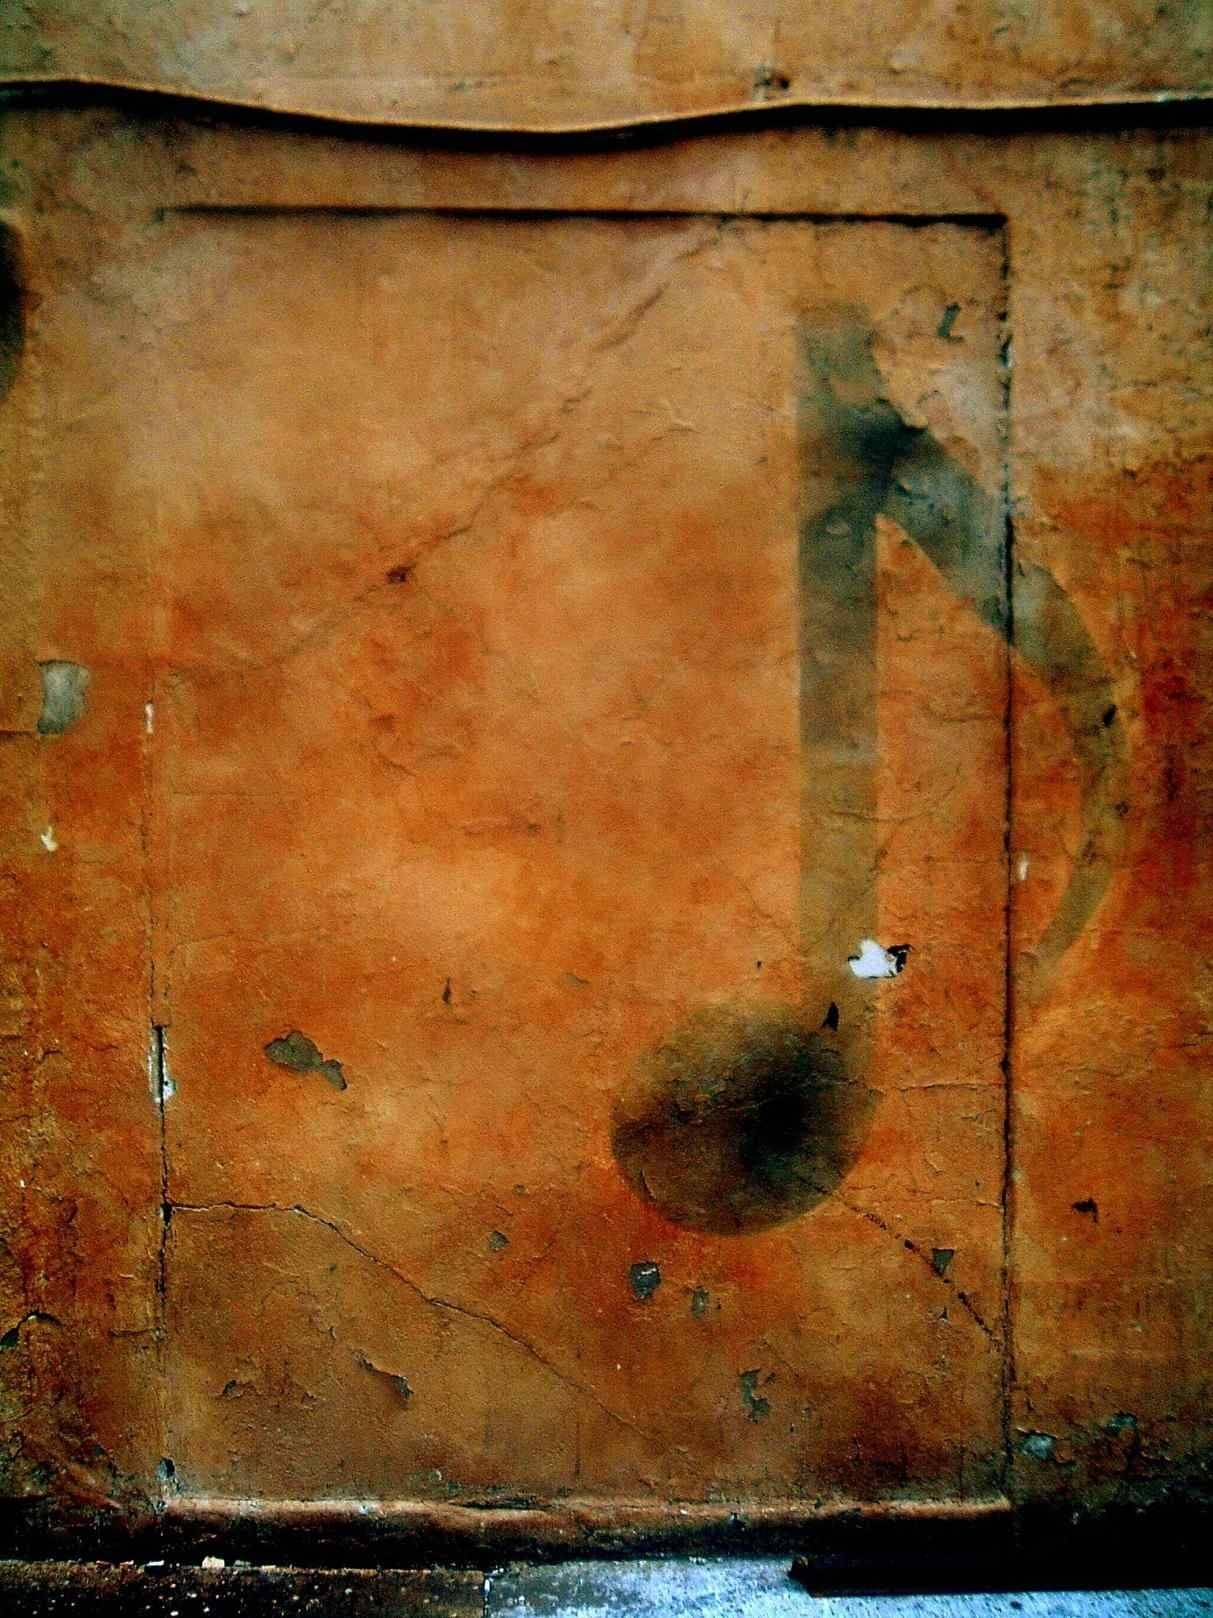 Wall Art And Walls Free Images Structure Wood Sunlight Texture In Best And Newest Rusted Metal Wall Art (View 18 of 20)